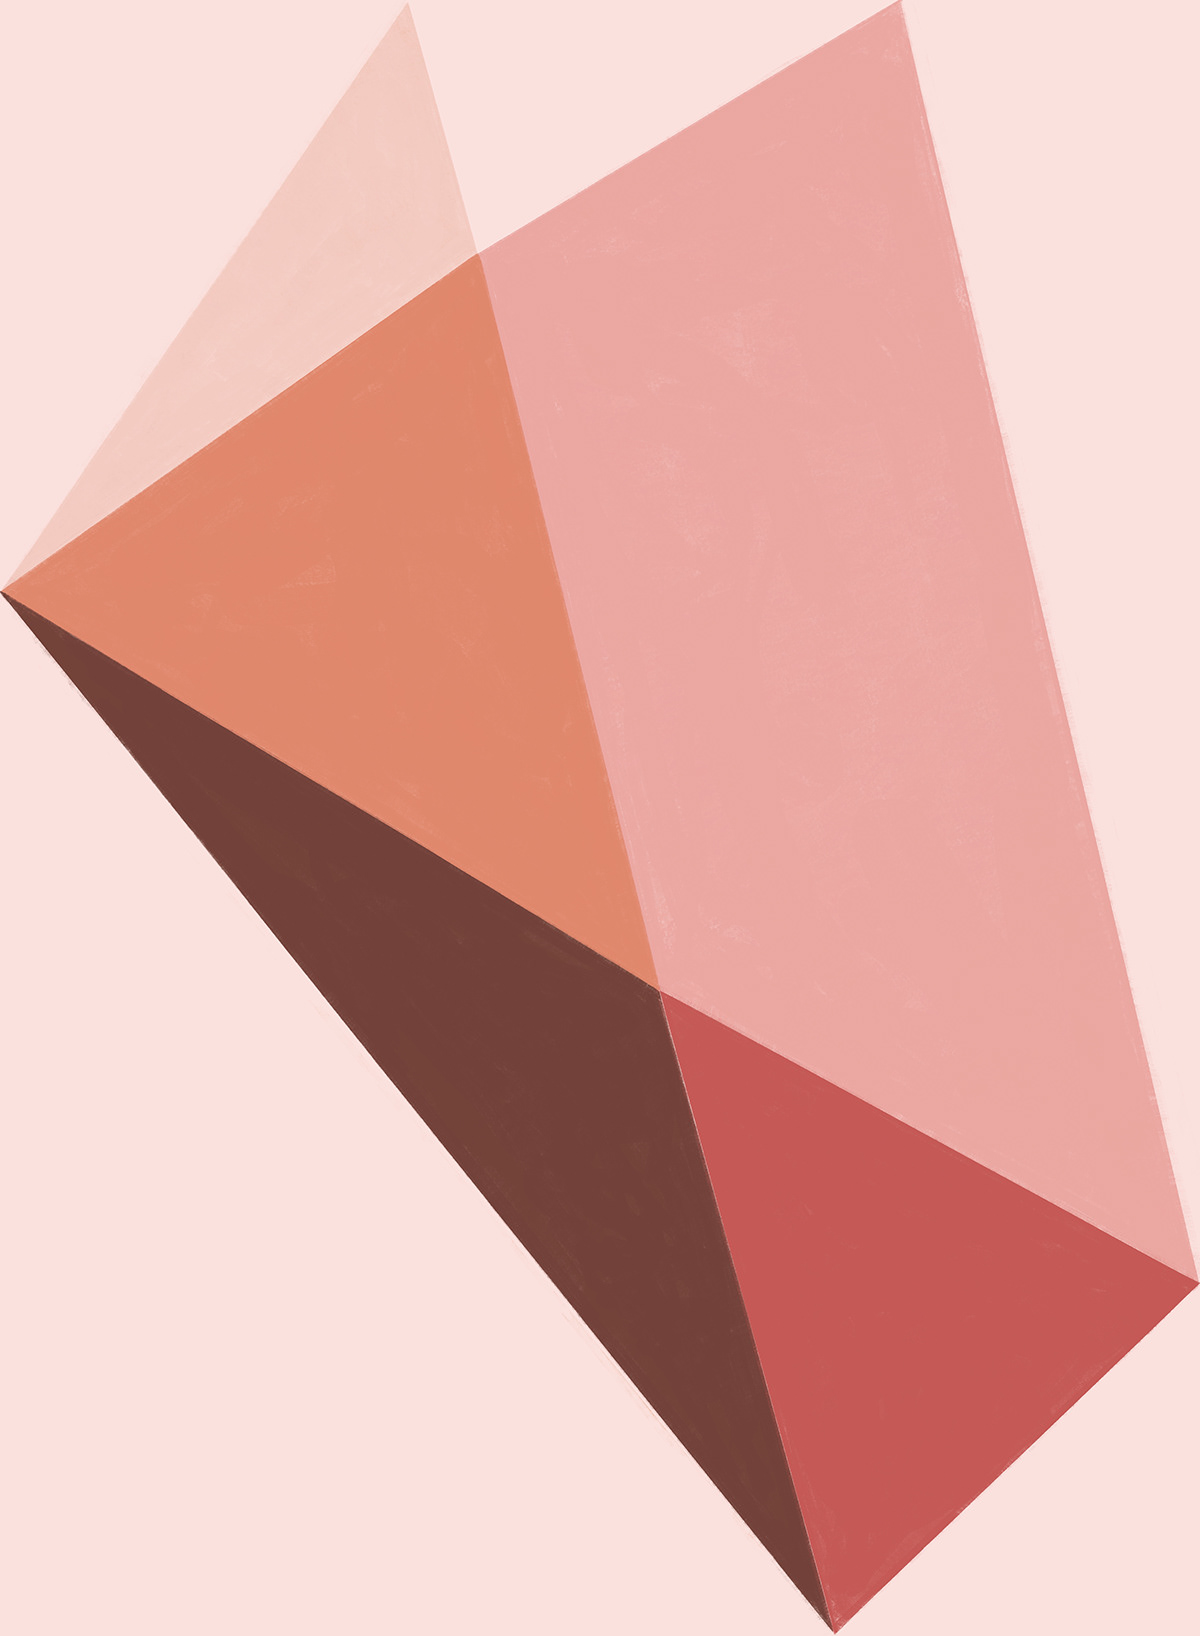 Abstract geometric study in pink stone color palette.